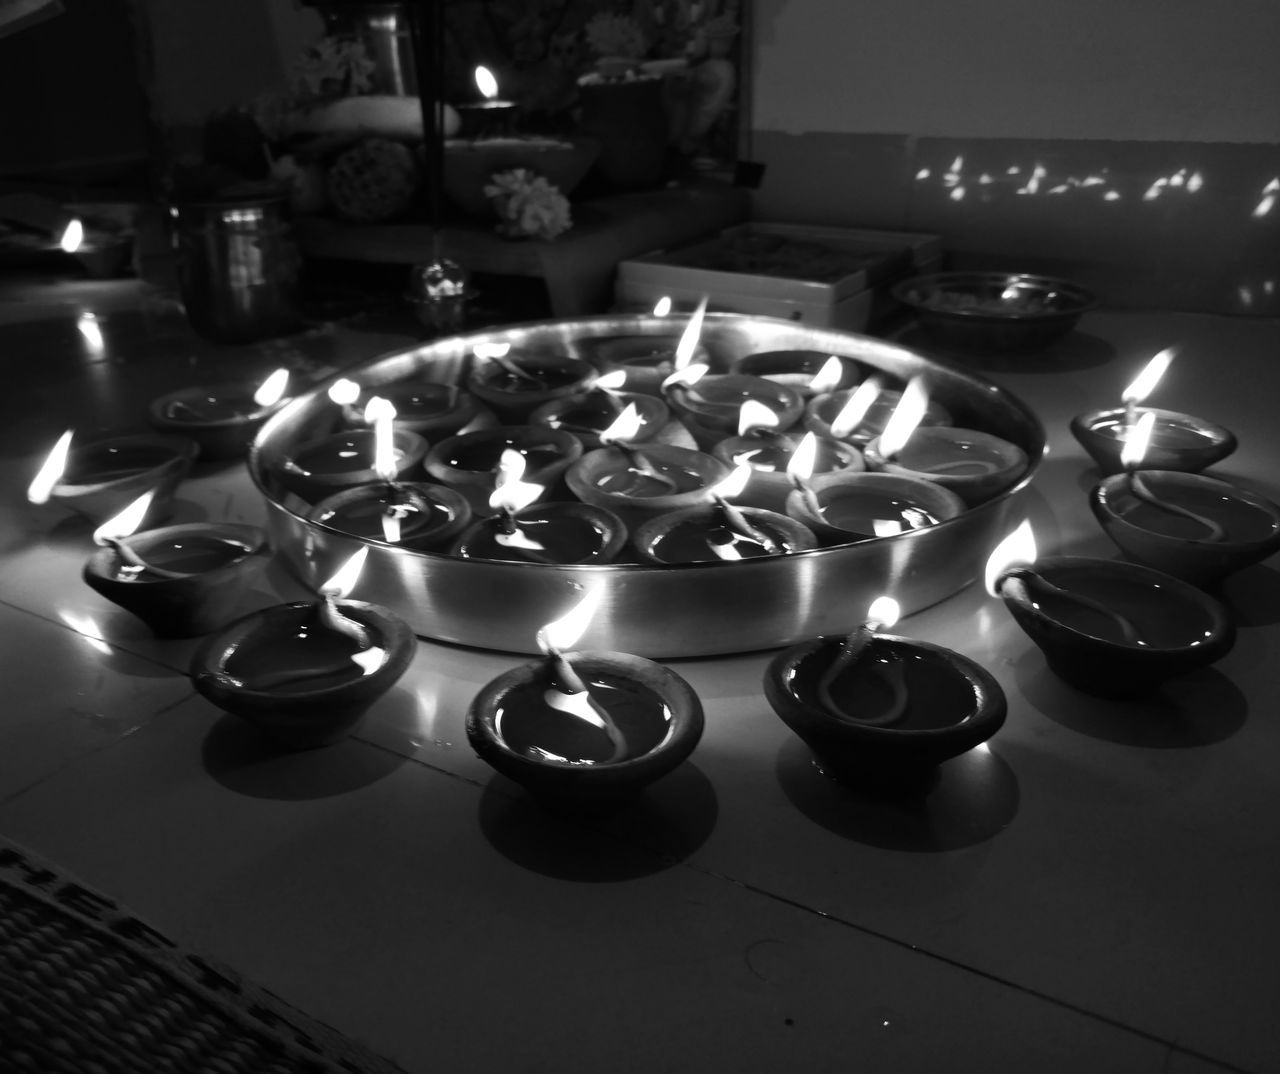 burning, flame, fire, candle, illuminated, glowing, fire - natural phenomenon, heat - temperature, no people, indoors, high angle view, tea light, religion, lighting equipment, decoration, large group of objects, nature, spirituality, belief, built structure, flooring, electric lamp